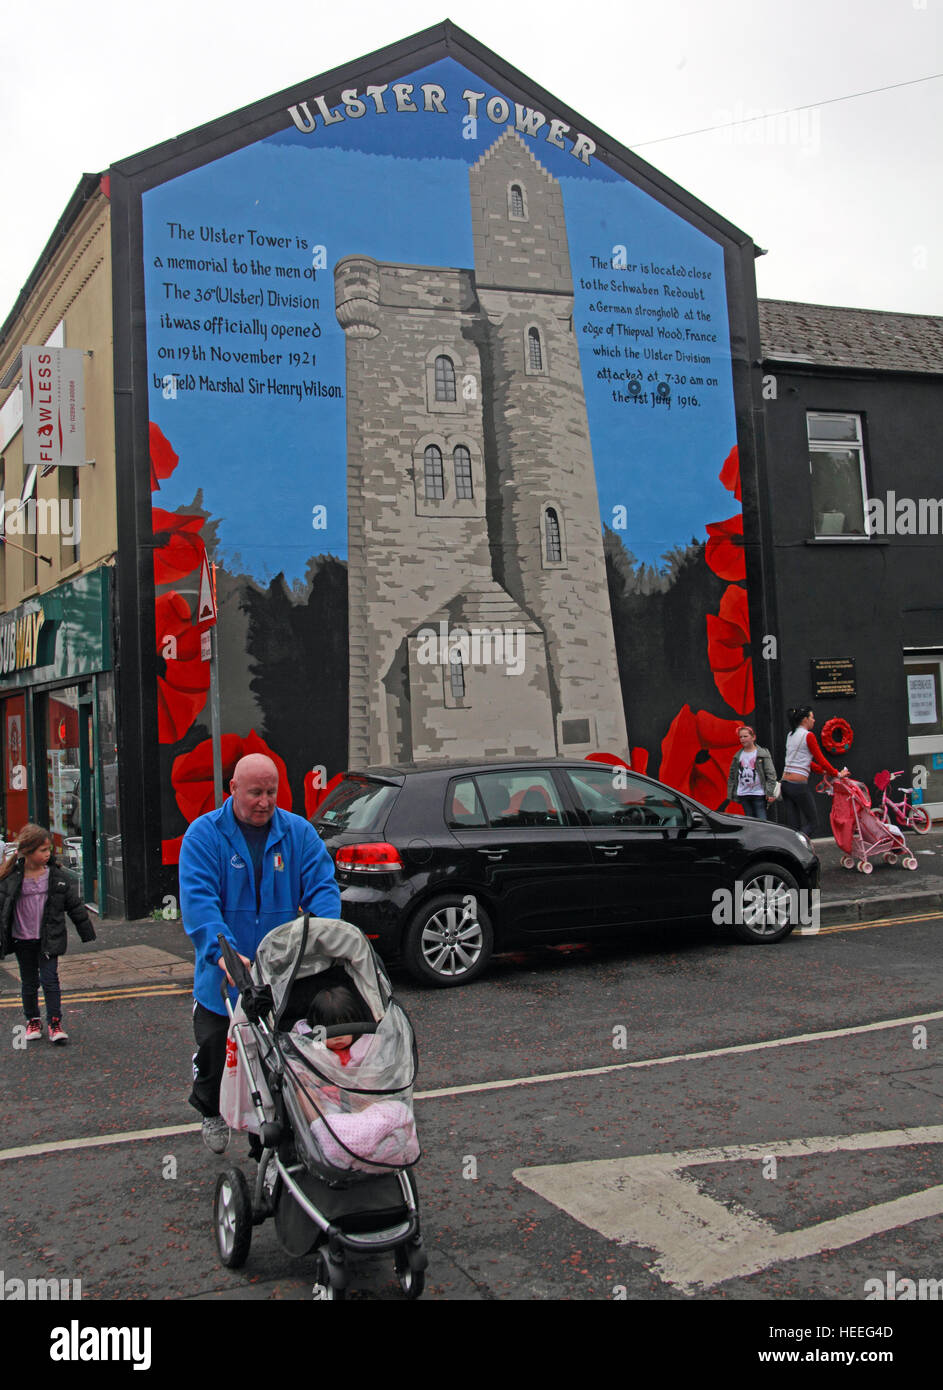 Mural,art,British,Union,wall,walls,gable end,gable,end,Northern,Irish,Republican,violence,para,military,paramilitary,fallen,Martyrs,martyr,street,rd,road,painting,painted,symbolism,Loyalist,culture,history,community,36th,field,marshal,Sir,Henry,Wilson,Schwaben,Redoubt,Somme,battle,of,orange,GoTonySmith,@HotpixUK,Tony,Smith,UK,GB,Great,Britain,United,Kingdom,Irish,British,Ireland,problem,with,problem with,issue with,NI,Northern,Northern Ireland,Belfast,City,Centre,Art,Artists,the,troubles,The Troubles,Good Friday Agreement,Peace,honour,painting,wall,walls,tribute,republicanism,Fight,Justice,West,Beal,feirste,martyrs,social,tour,tourism,tourists,urban,six,counties,6,backdrop,county,Antrim,Shankill,Rd,Road,Royal,Royalist,Loyalist,Belfast streets,Buy Pictures of,Buy Images Of,Images of,Stock Images,Tony Smith,United Kingdom,Great Britain,British Isles